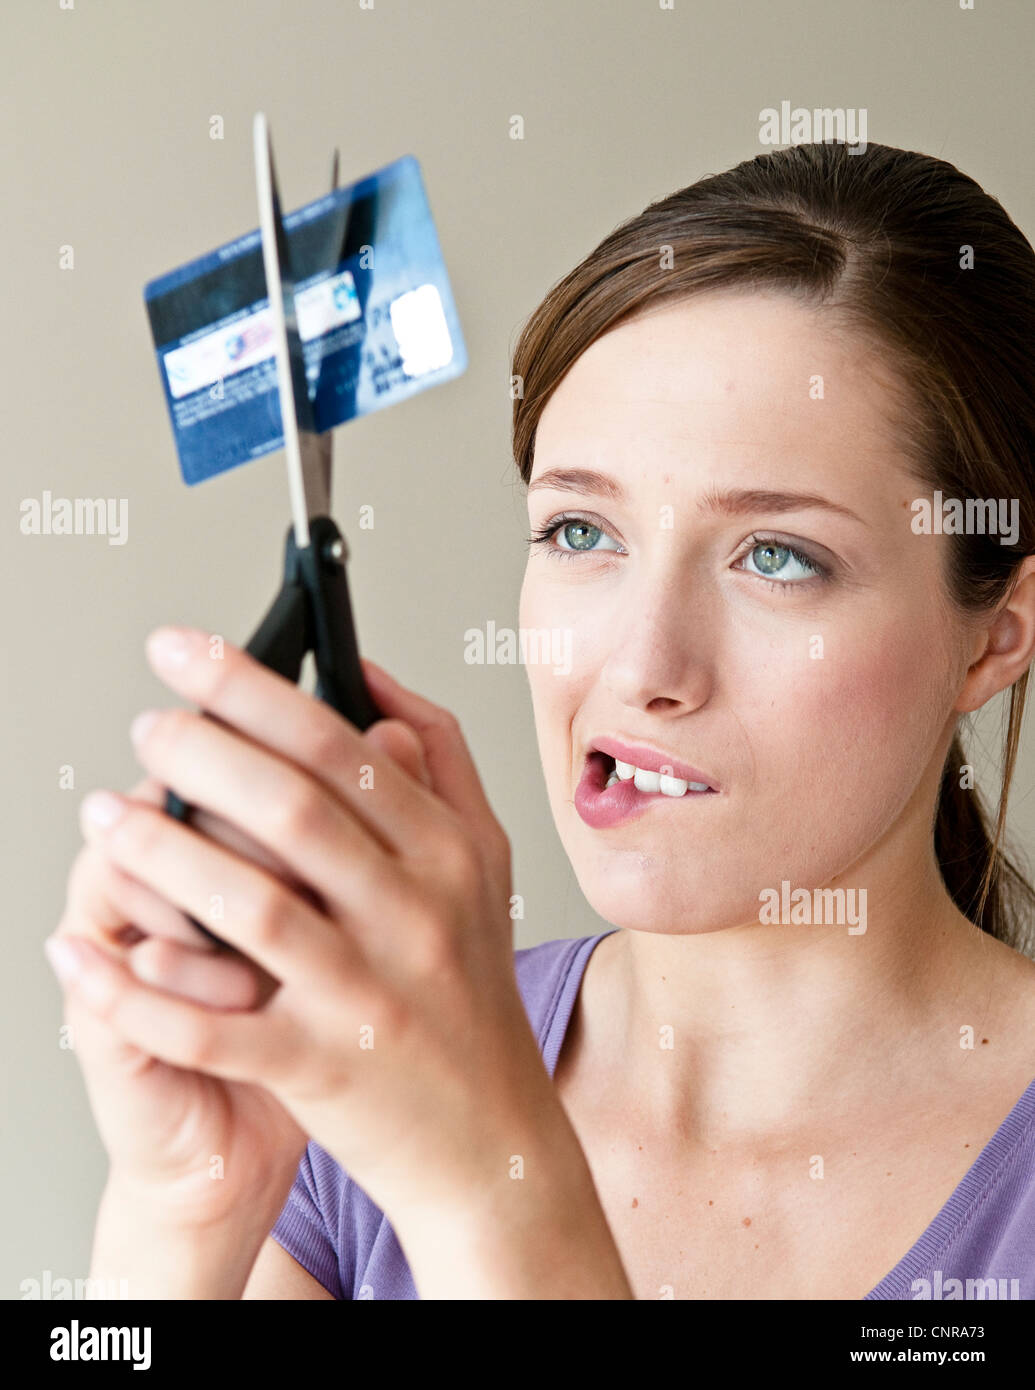 Woman cutting up credit card Stock Photo